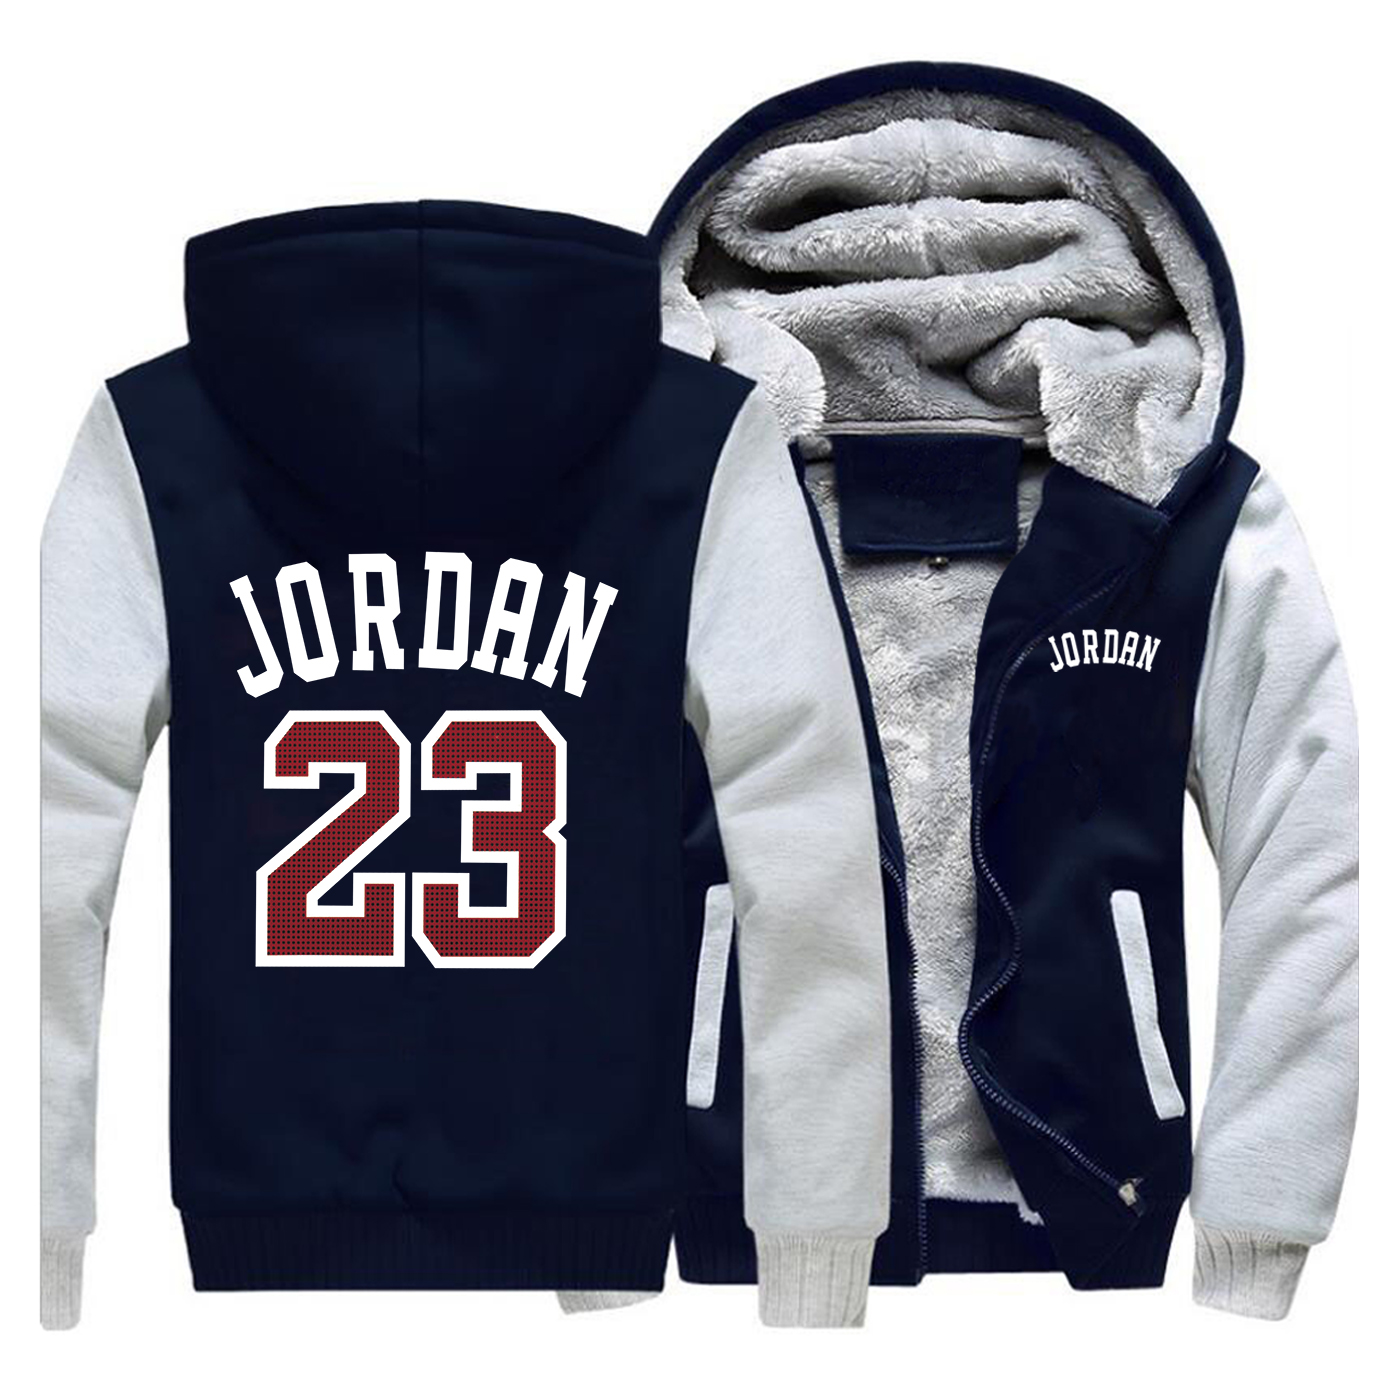 Winter 2019 Hot Sale Coat Thick Hoodies Jordan 23 Fashion Hip Hop Zipper Sweatshirts Raglan Mens Funny Warm Clothing Sportswear